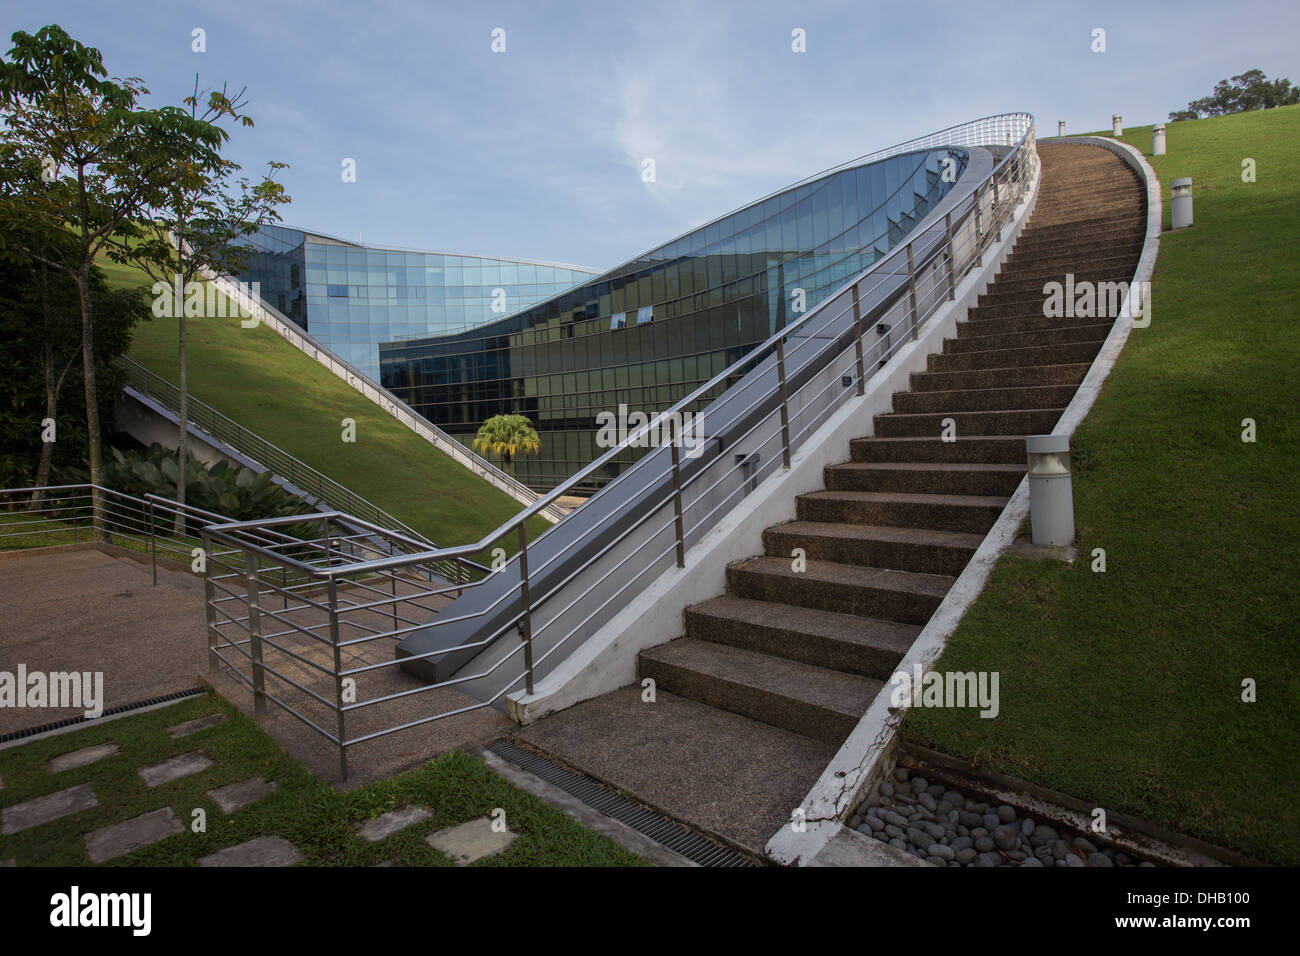 The Nanyang Technology University - School of Art, Design and Media building was conceived as natural extensions of the earth - Stock Image